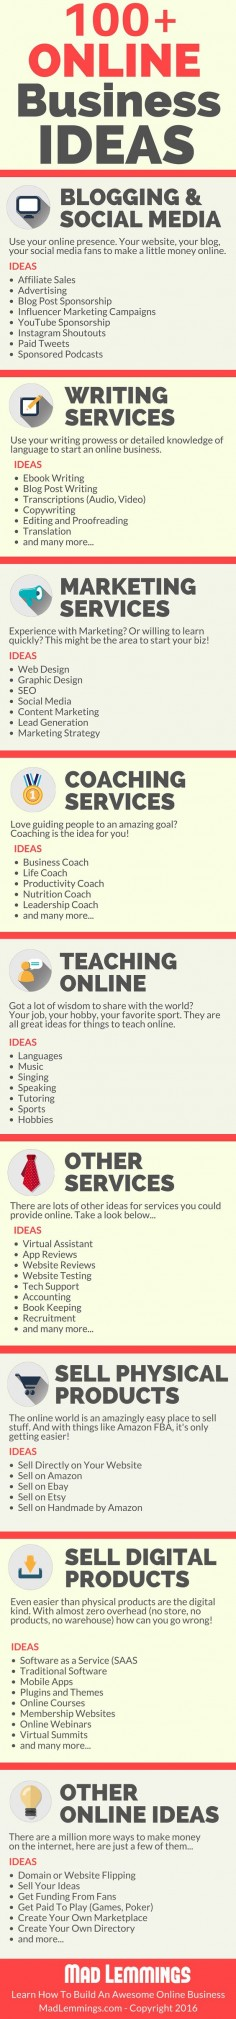 Over 100 Internet Business ideas to help you start making money online or just find new ways to.